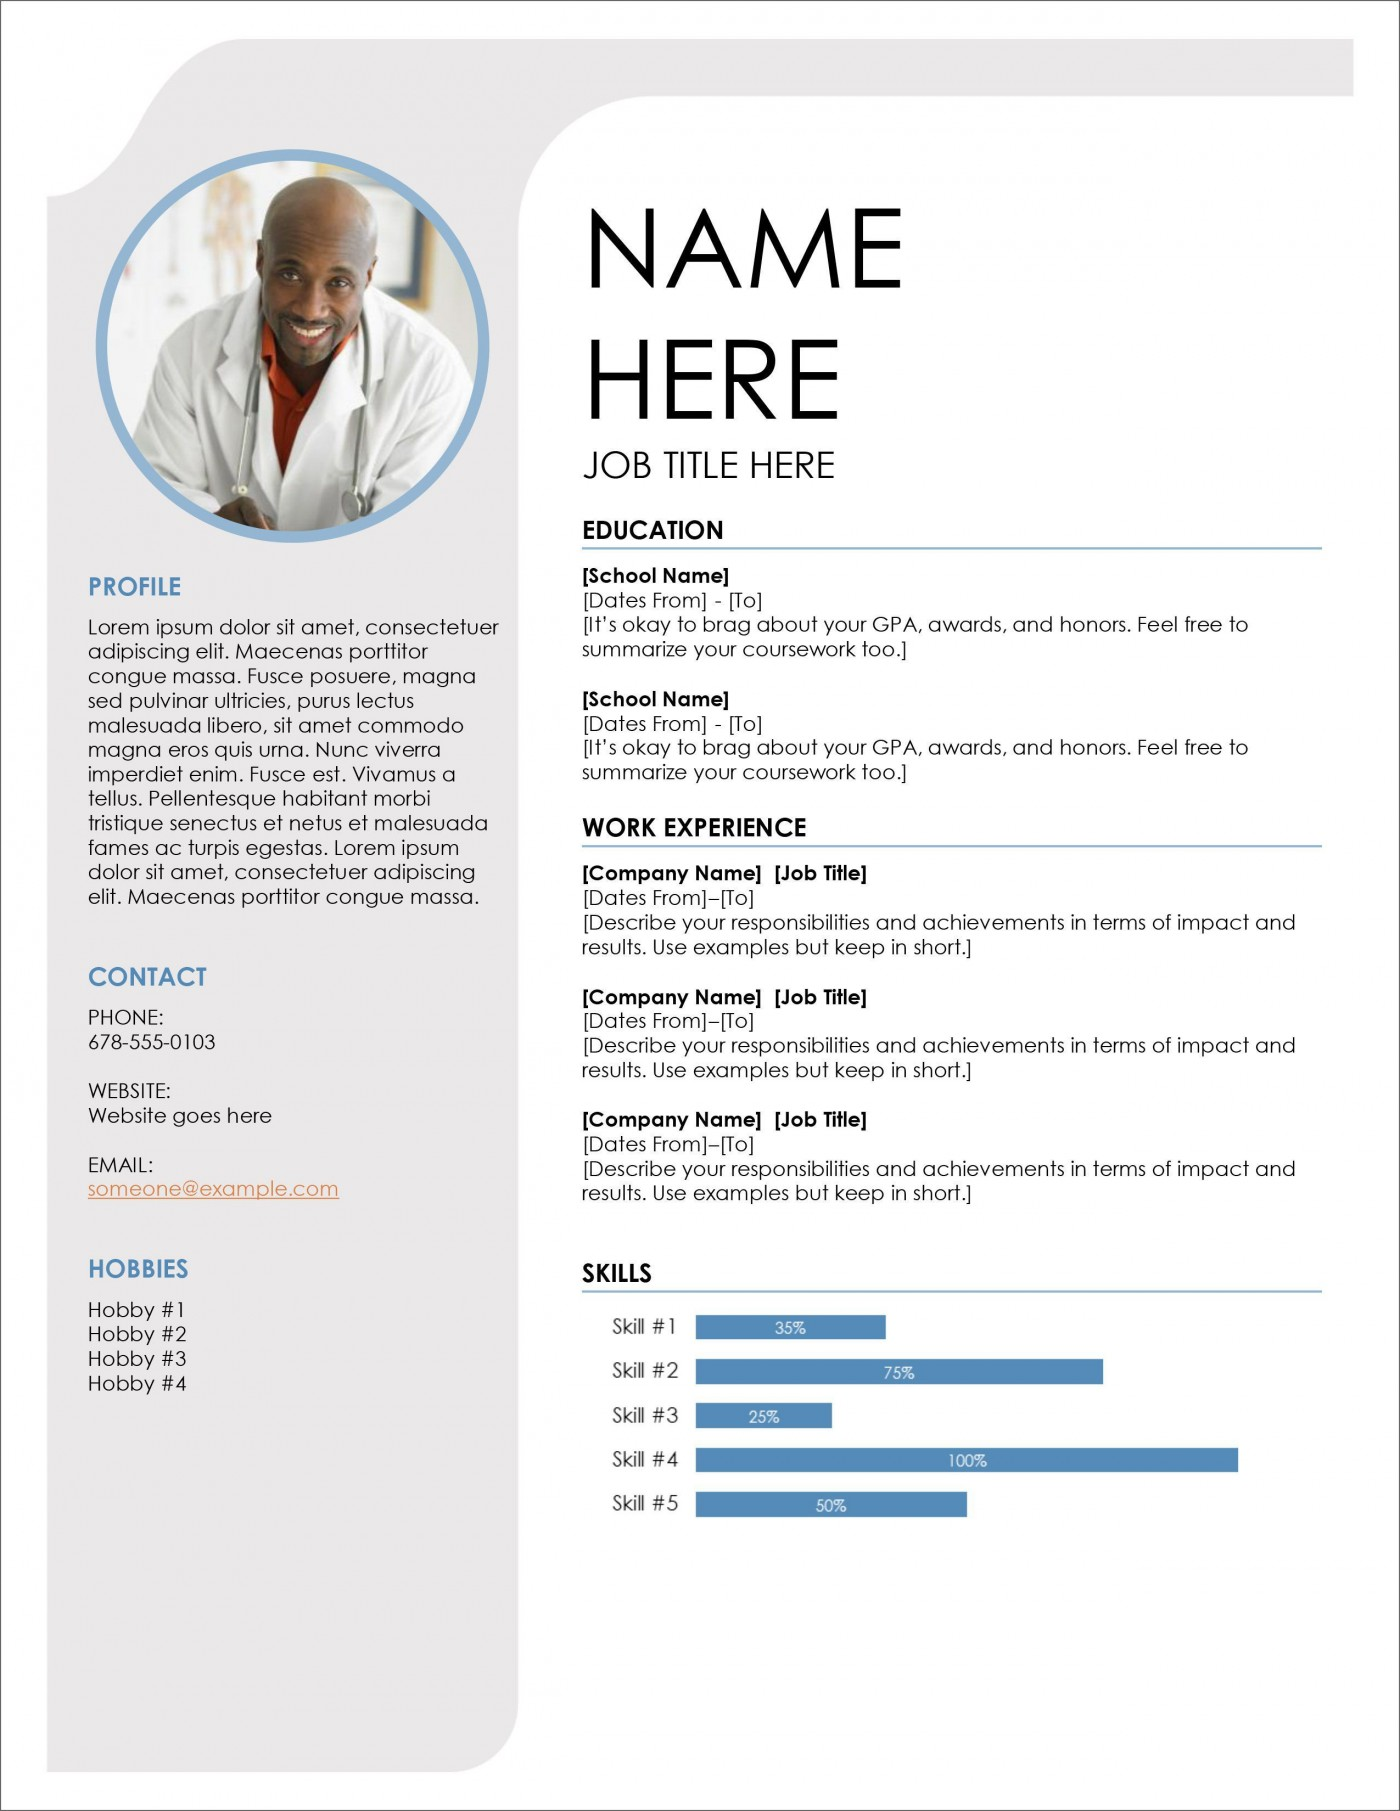 005 Incredible Download Free Resume Template Word 2018 Inspiration 1400